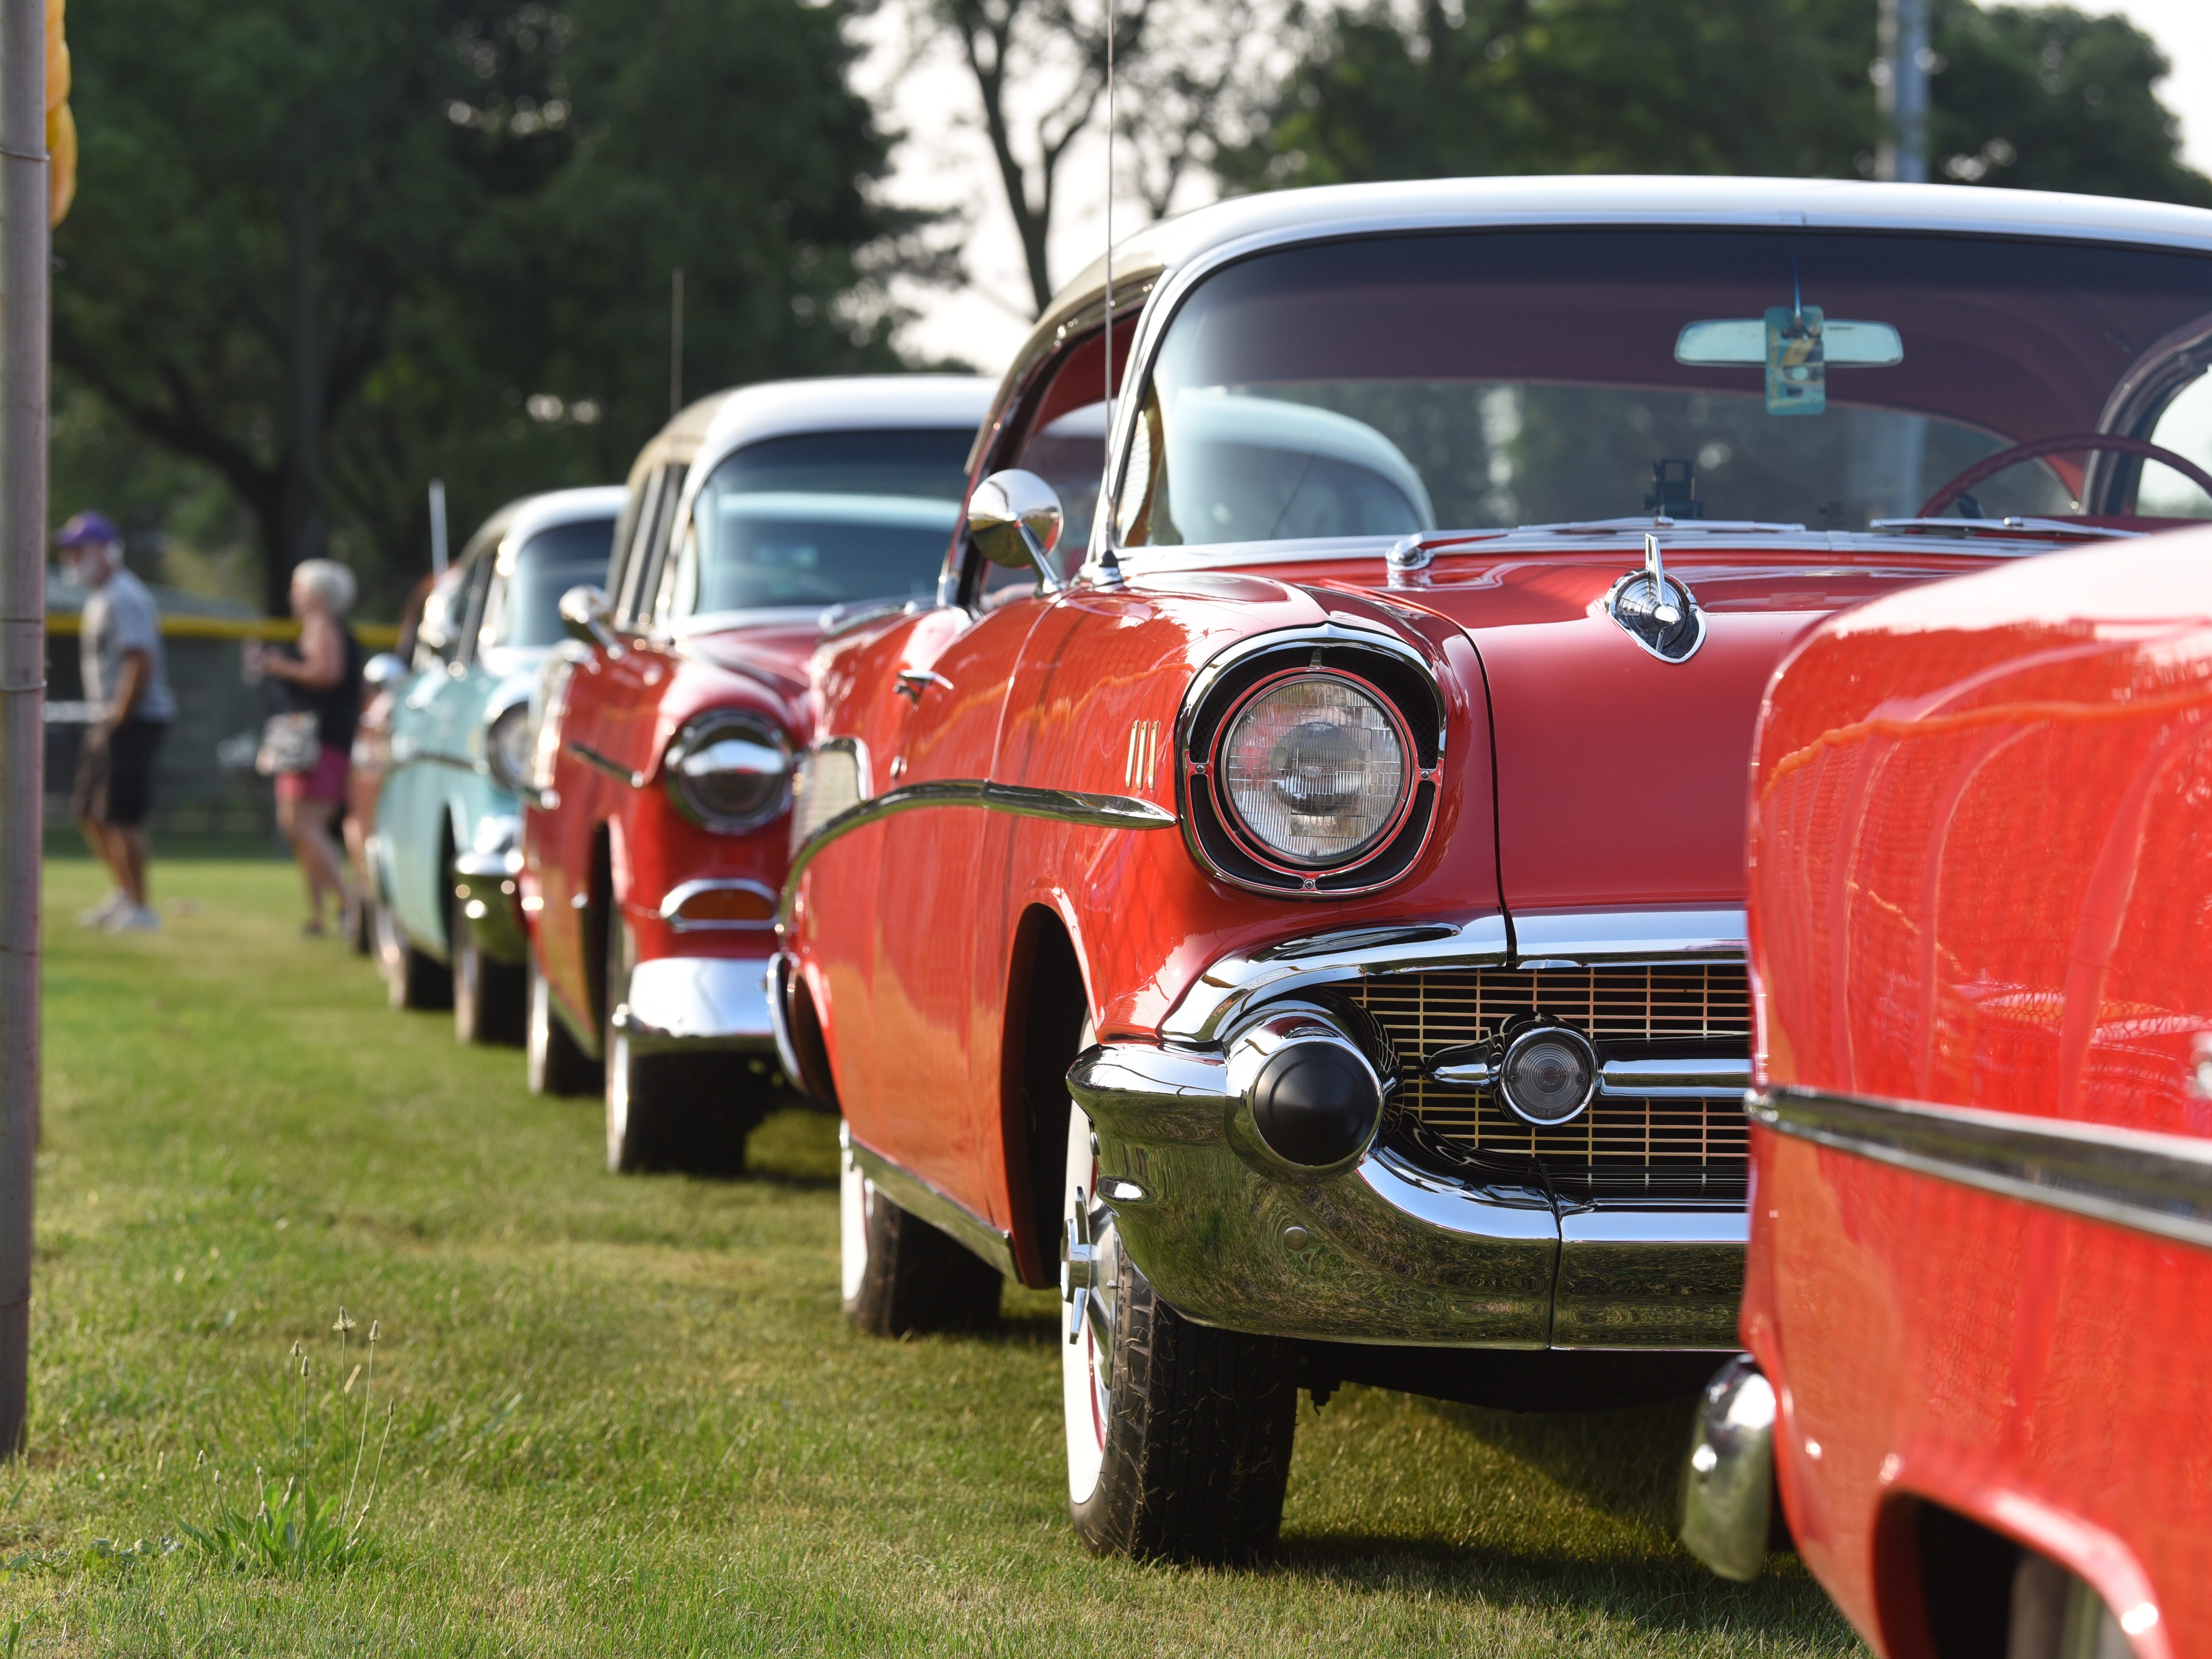 Classic Chevy Bel-Airs glimmer in the morning sunny for the start of the Woodward Dream Cruise.